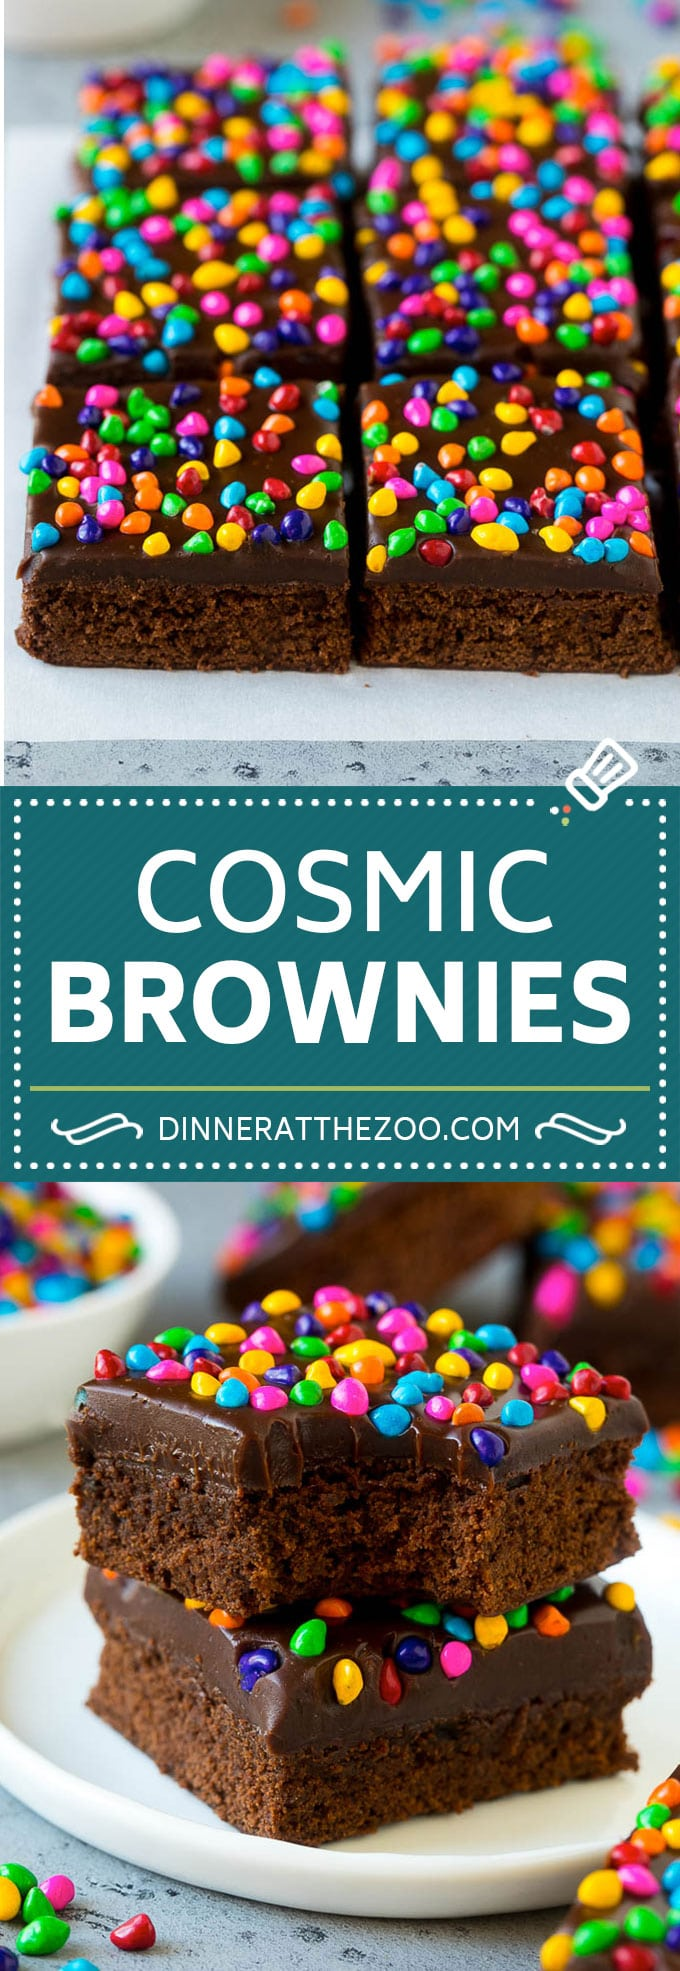 Cosmic Brownies Recipe | Cocoa Brownies | Frosted Brownies #brownies #chocolate #dessert #dinneratthezoo #sprinkles